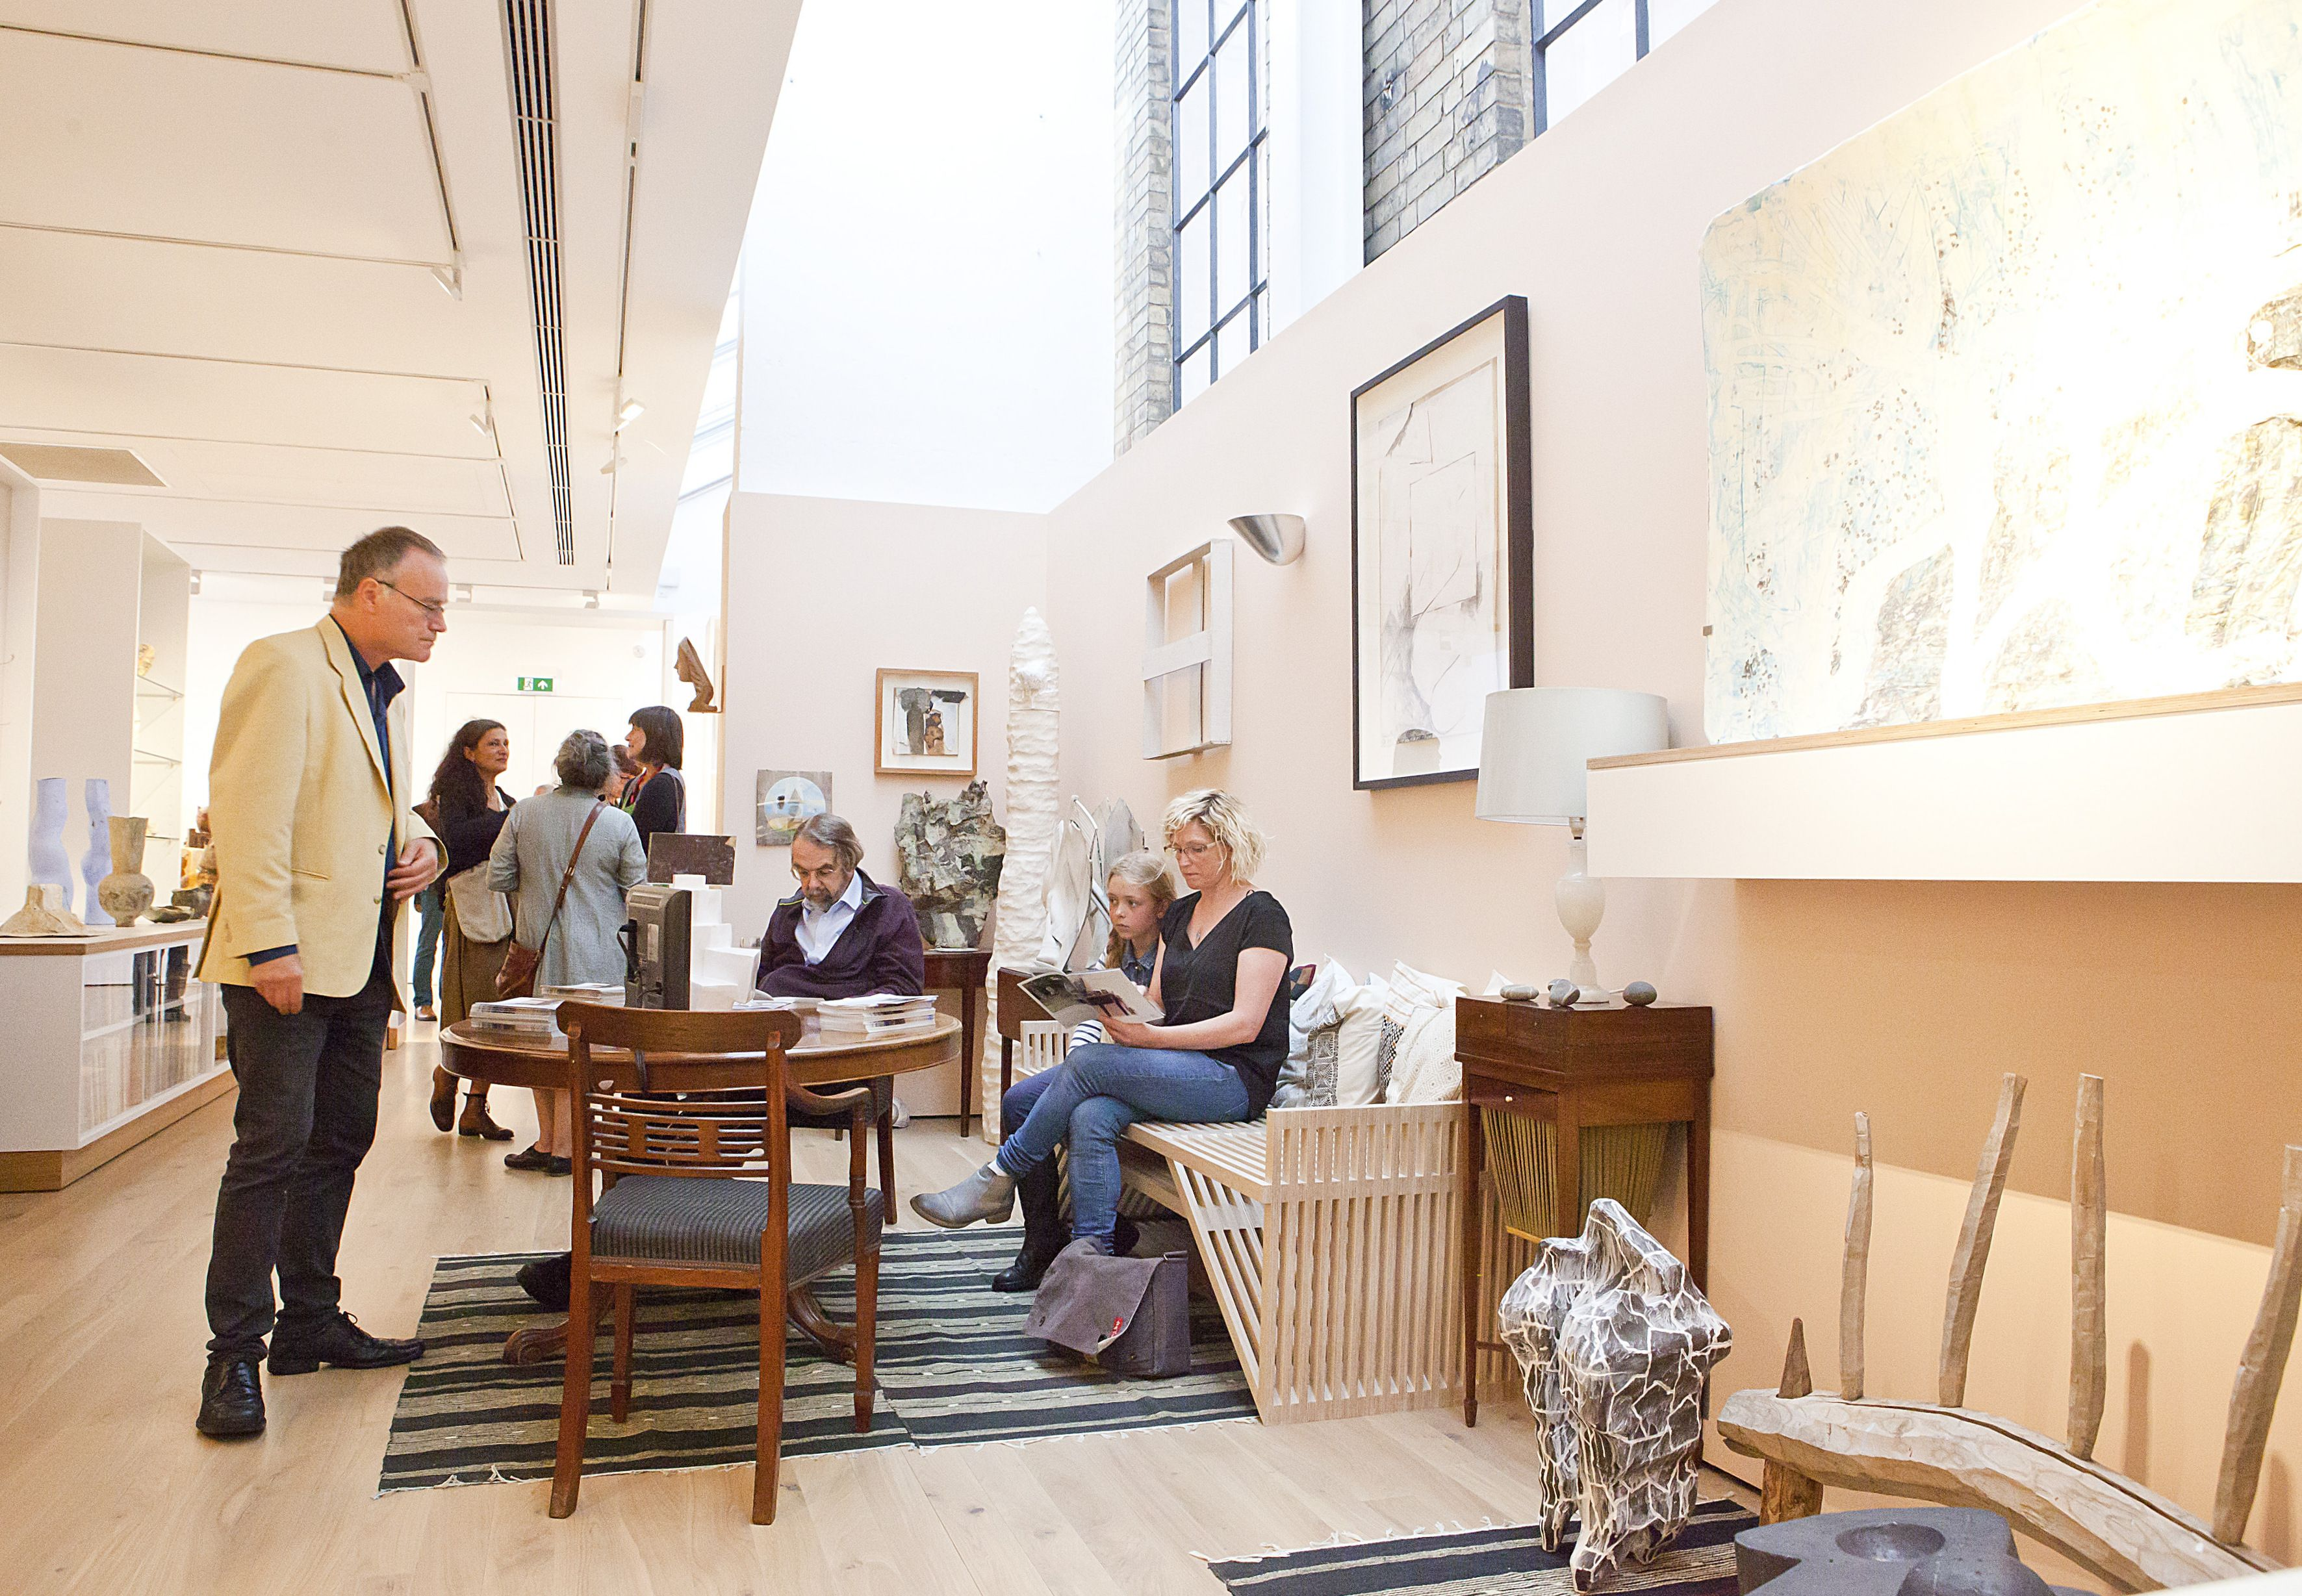 Visitors can experience what life is like in the home of a ceramics collection in the